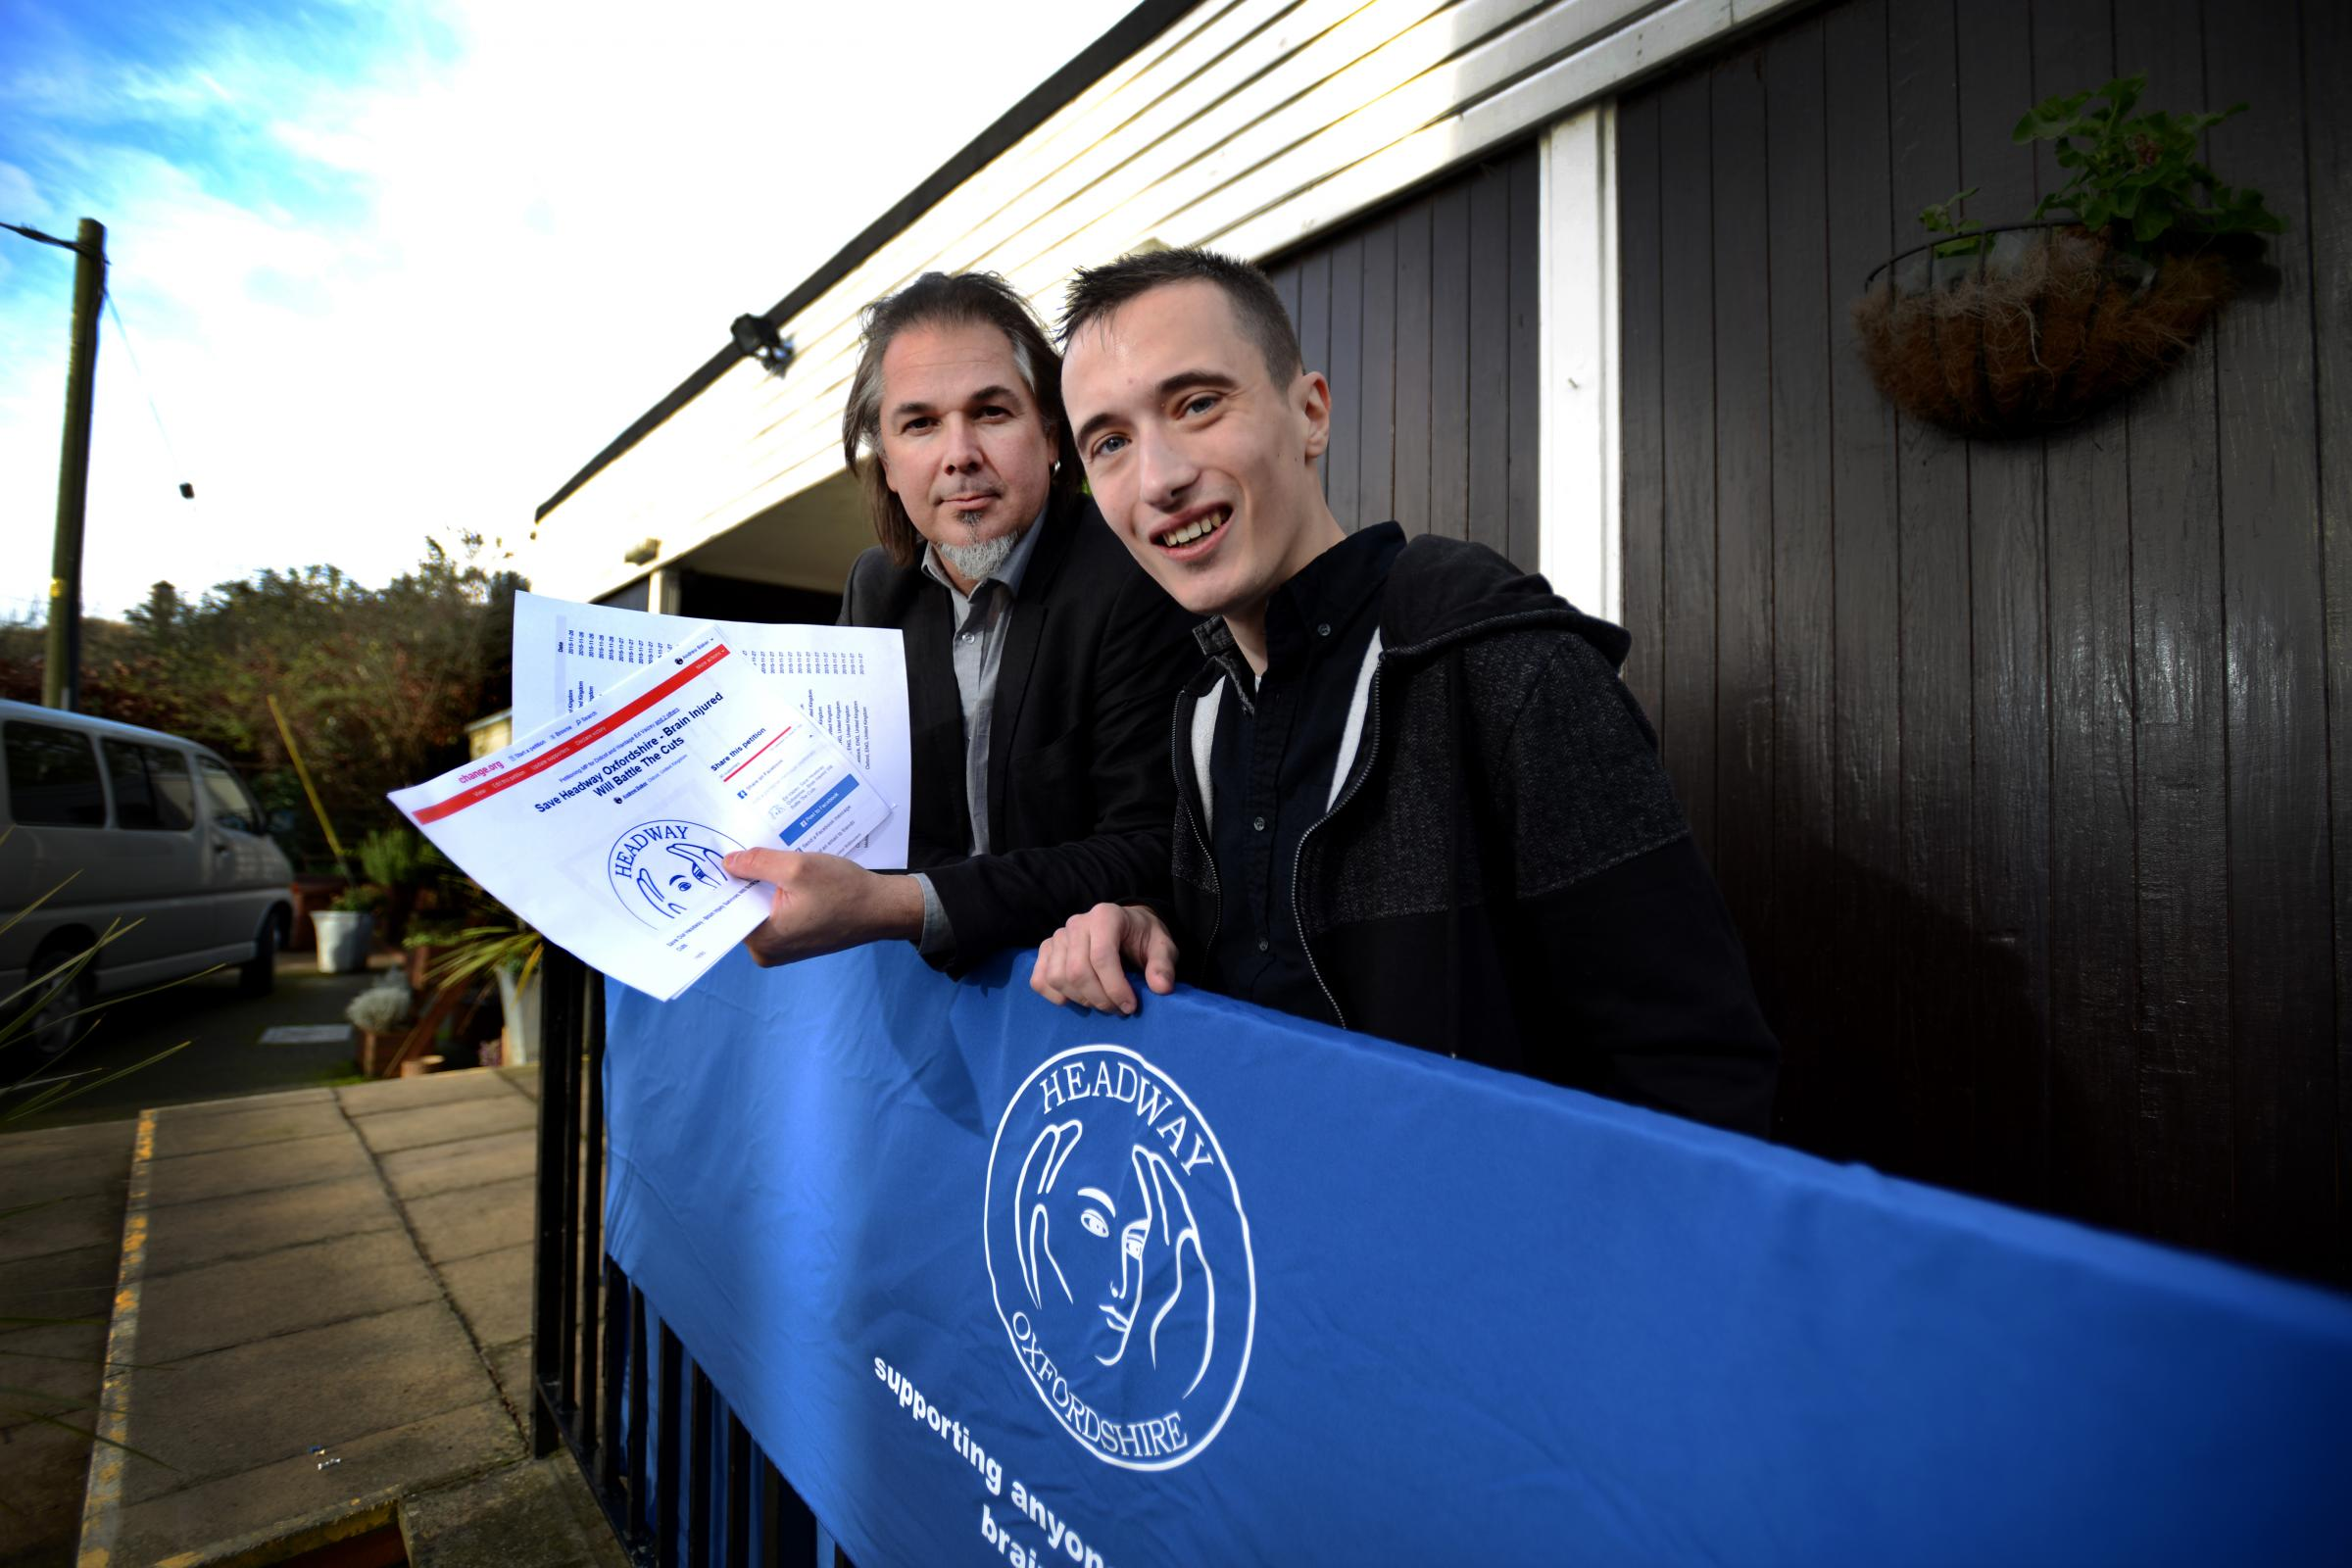 Headway chief executive Jamie Miller, left, with Andrew Baker and his petition